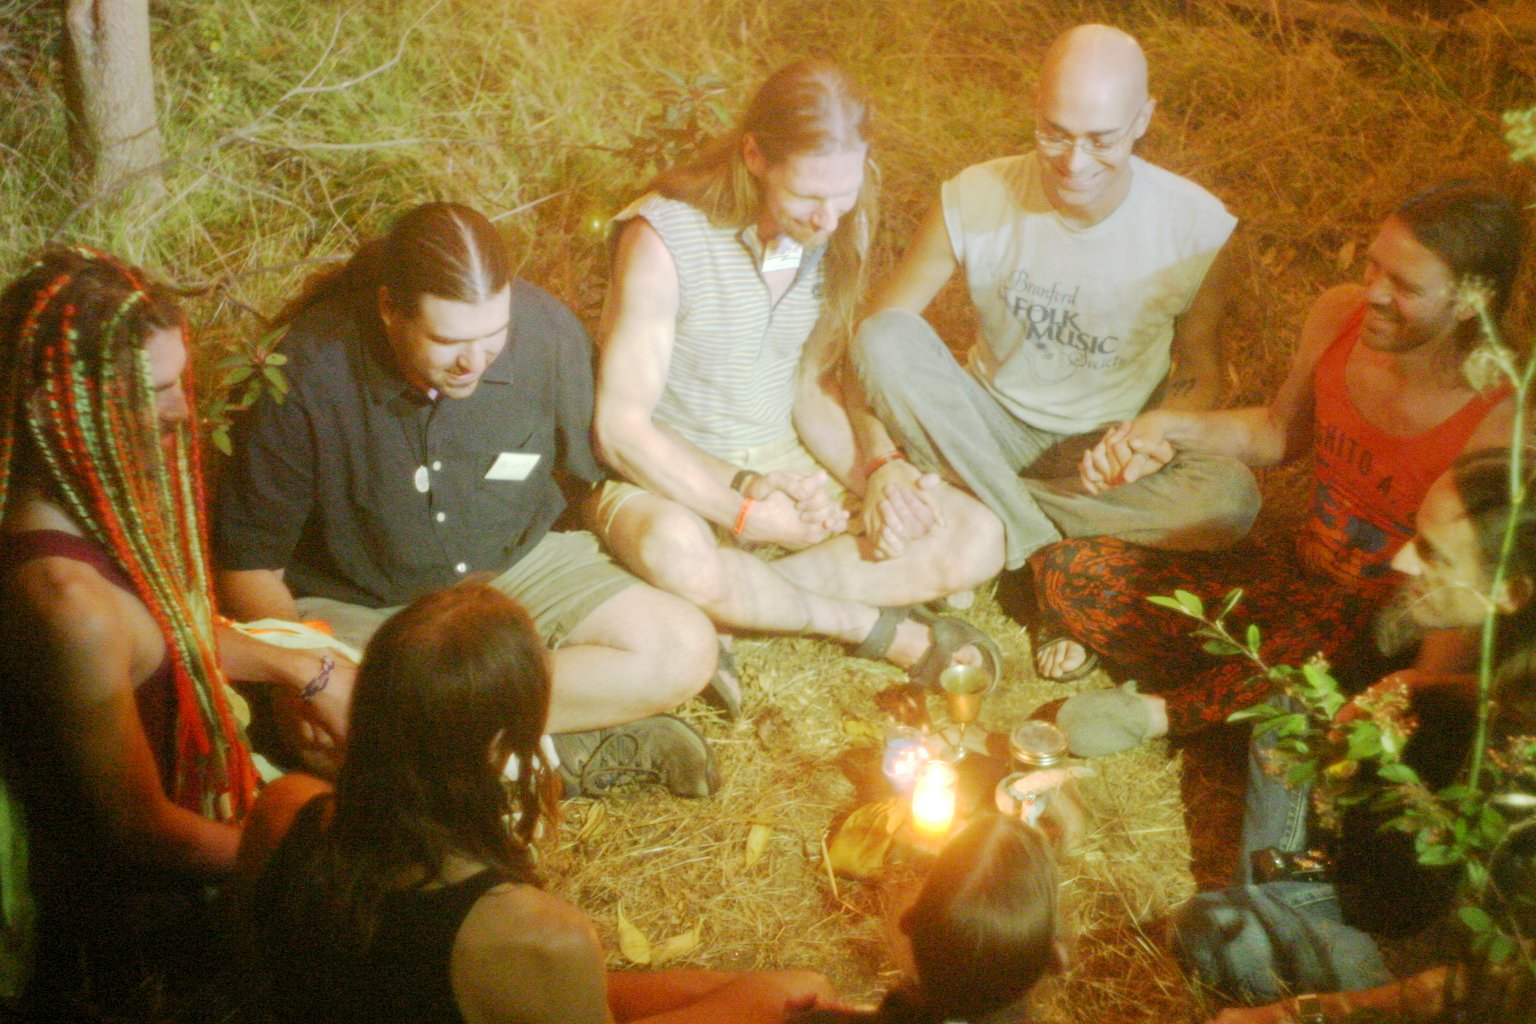 Holding Hands in Ritual Circle